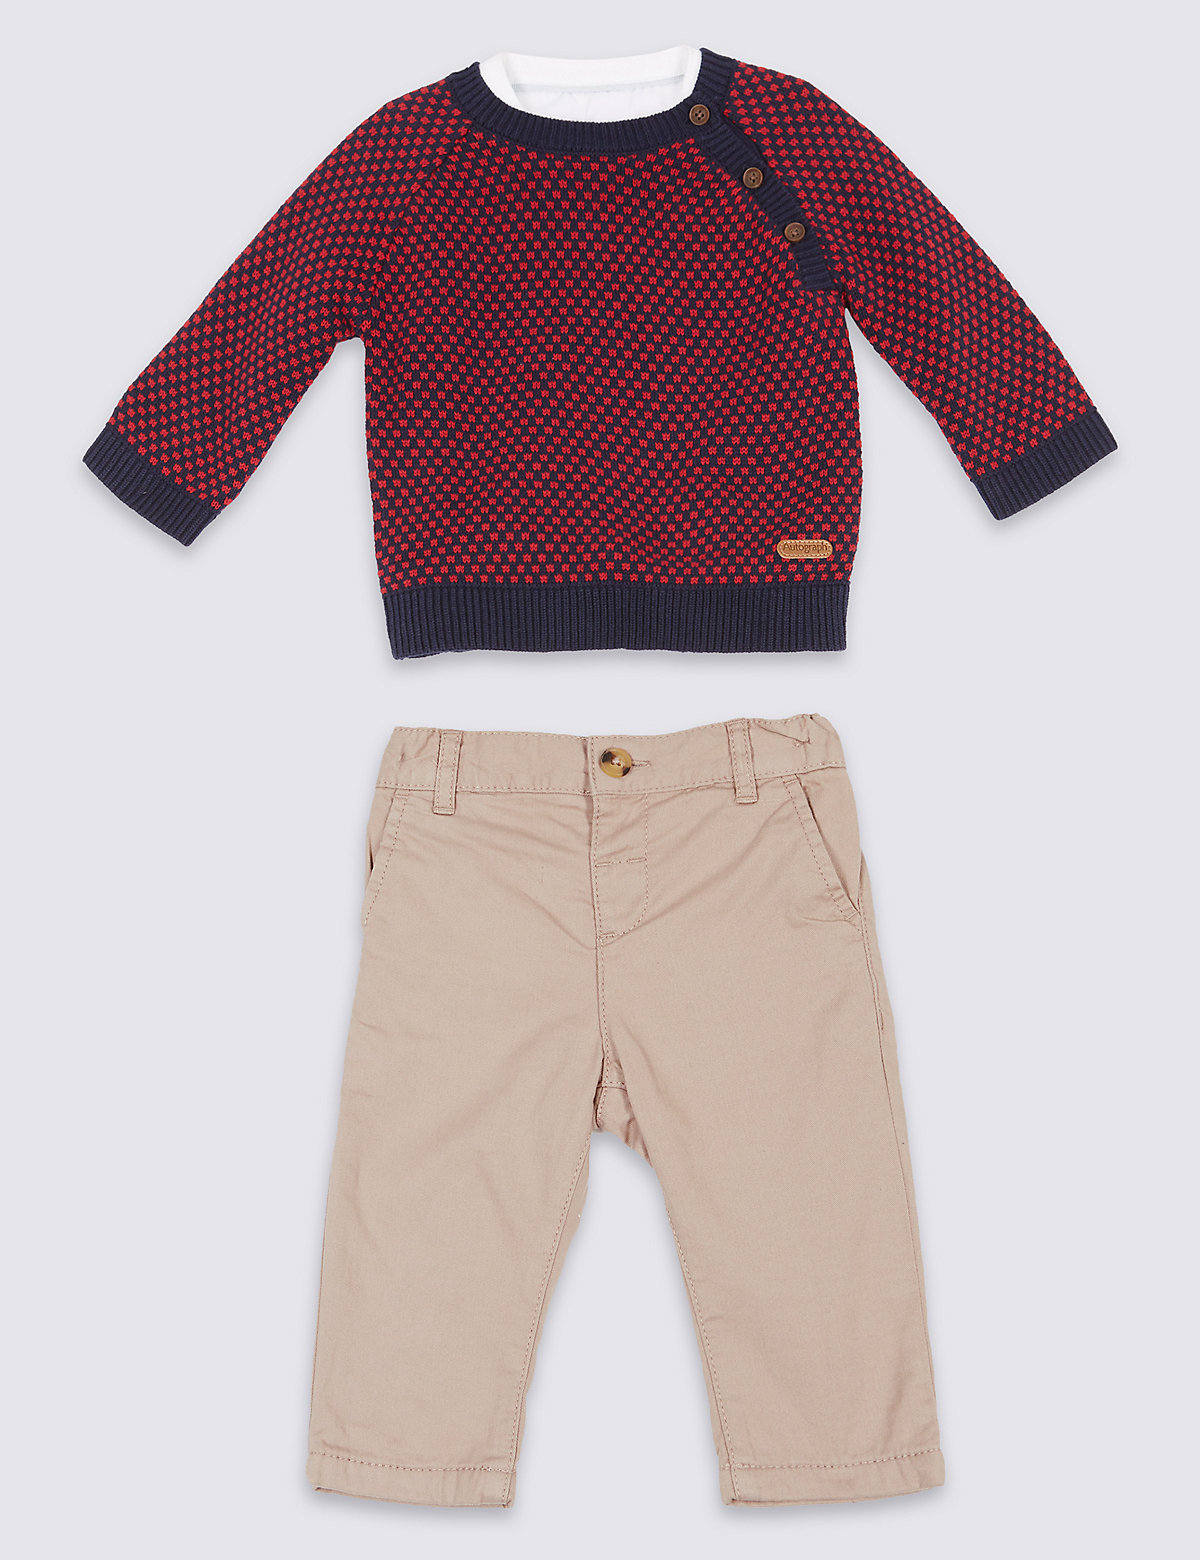 Autograph 3 Piece Pure Cotton Jumper & Shirt with Trousers